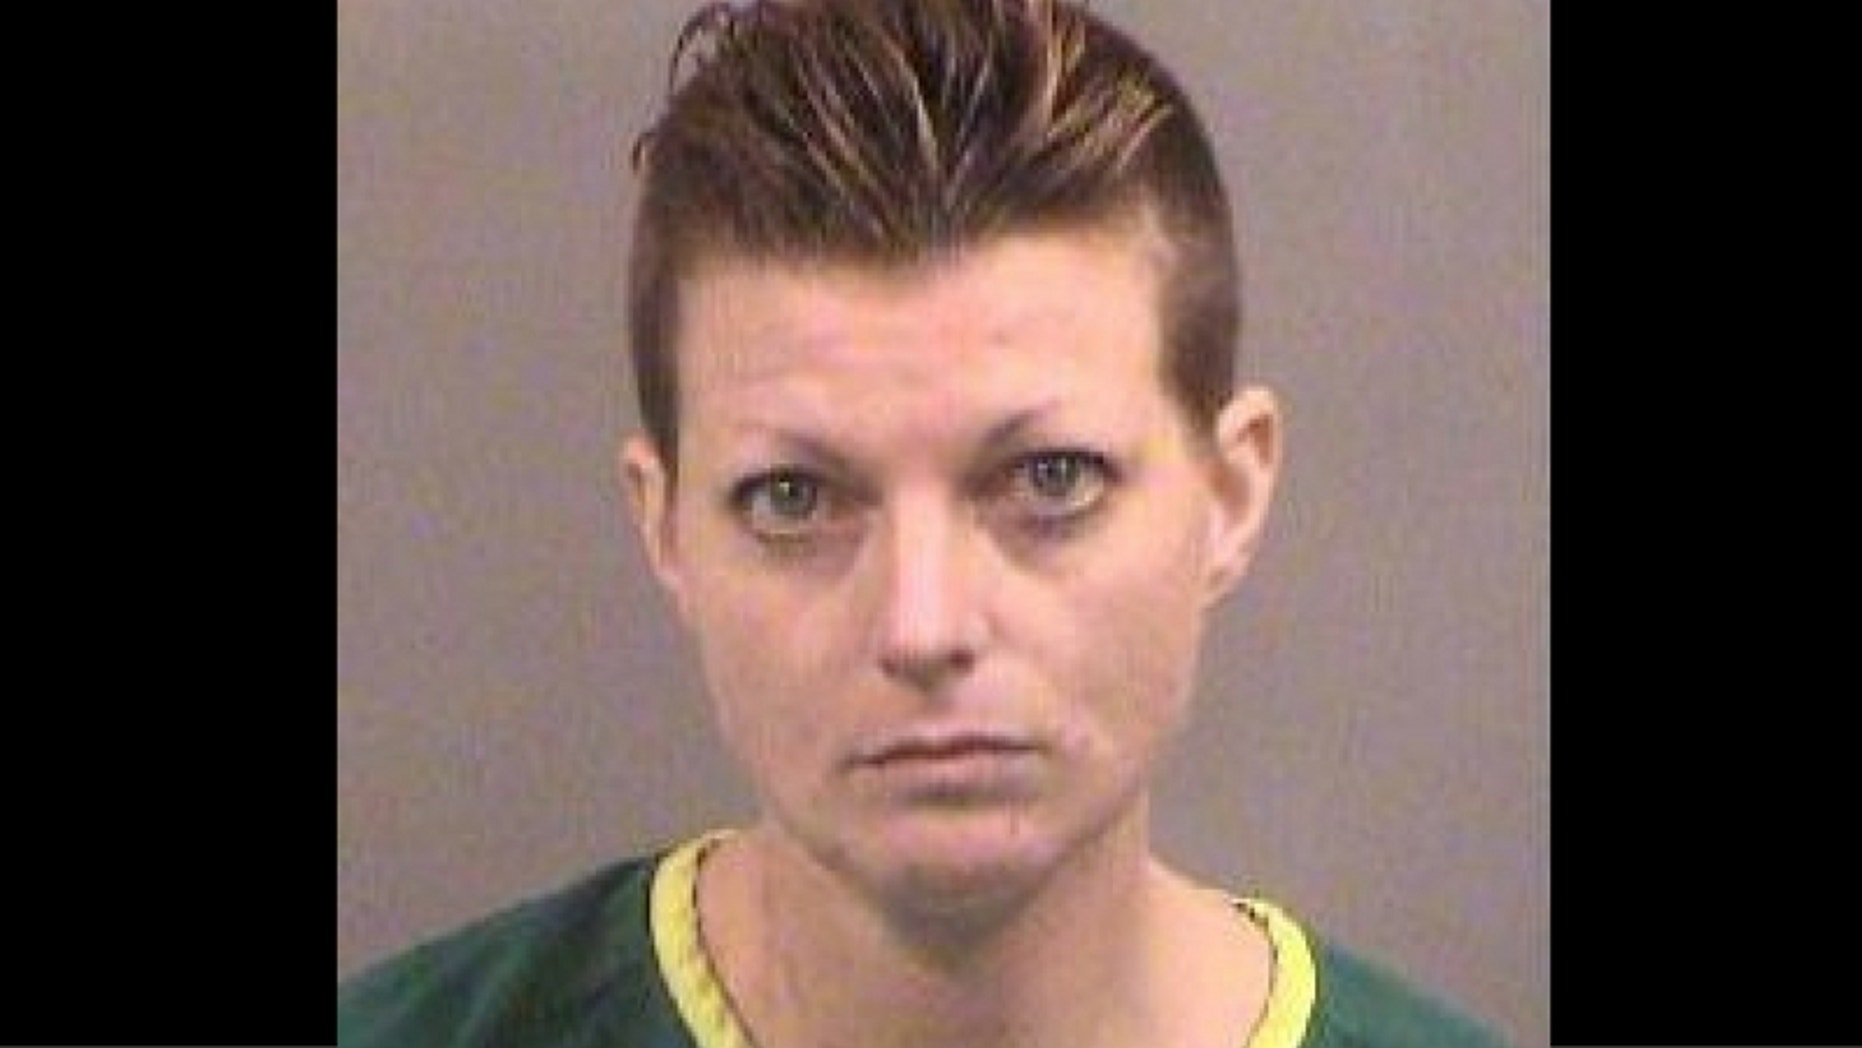 Rachael Hilyard, 35, is accused of killing her ex-boyfriend's grandmother on Sunday. (Sedgwick County Jail)